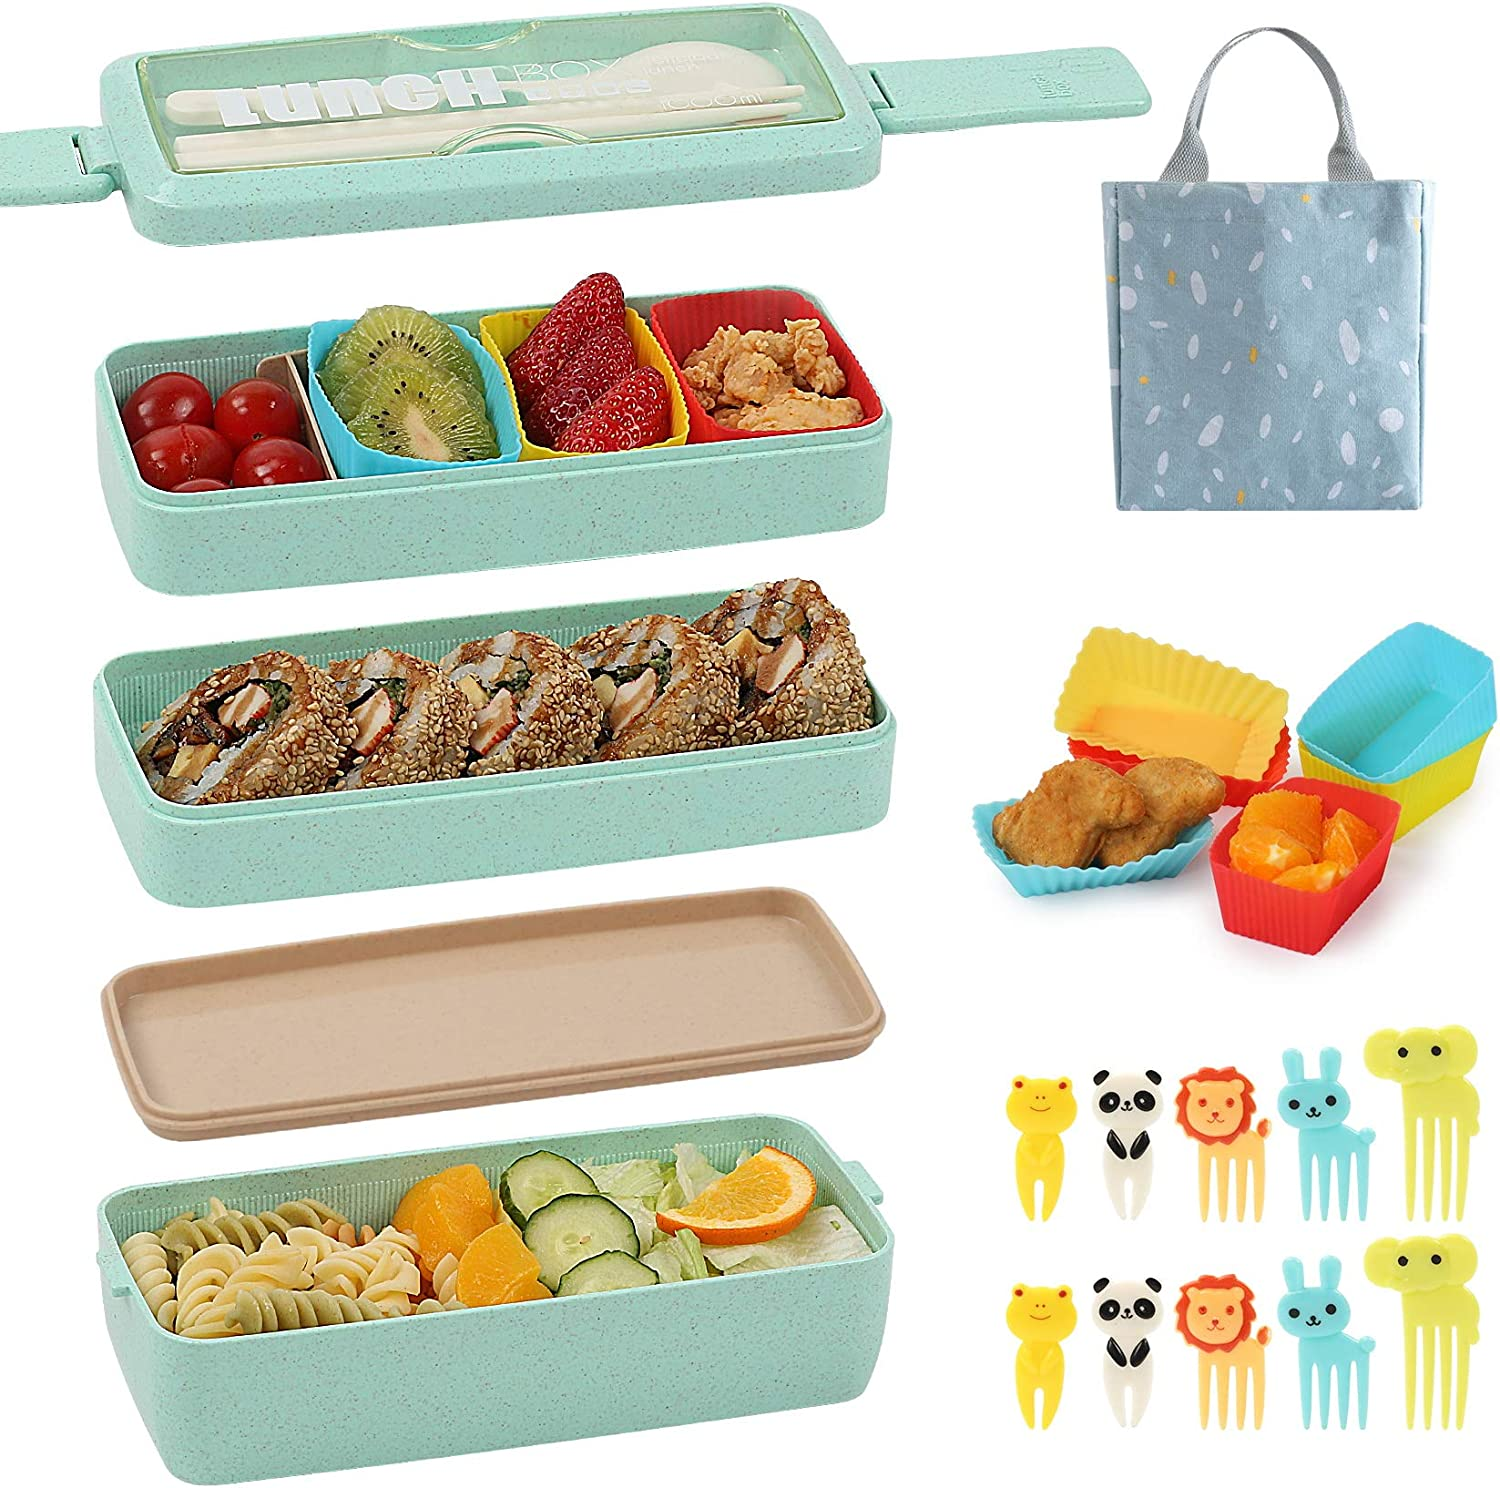 Bento Box for Bargain sale Kids with Silicone Cups Cupcake Food Translated Baking Pick